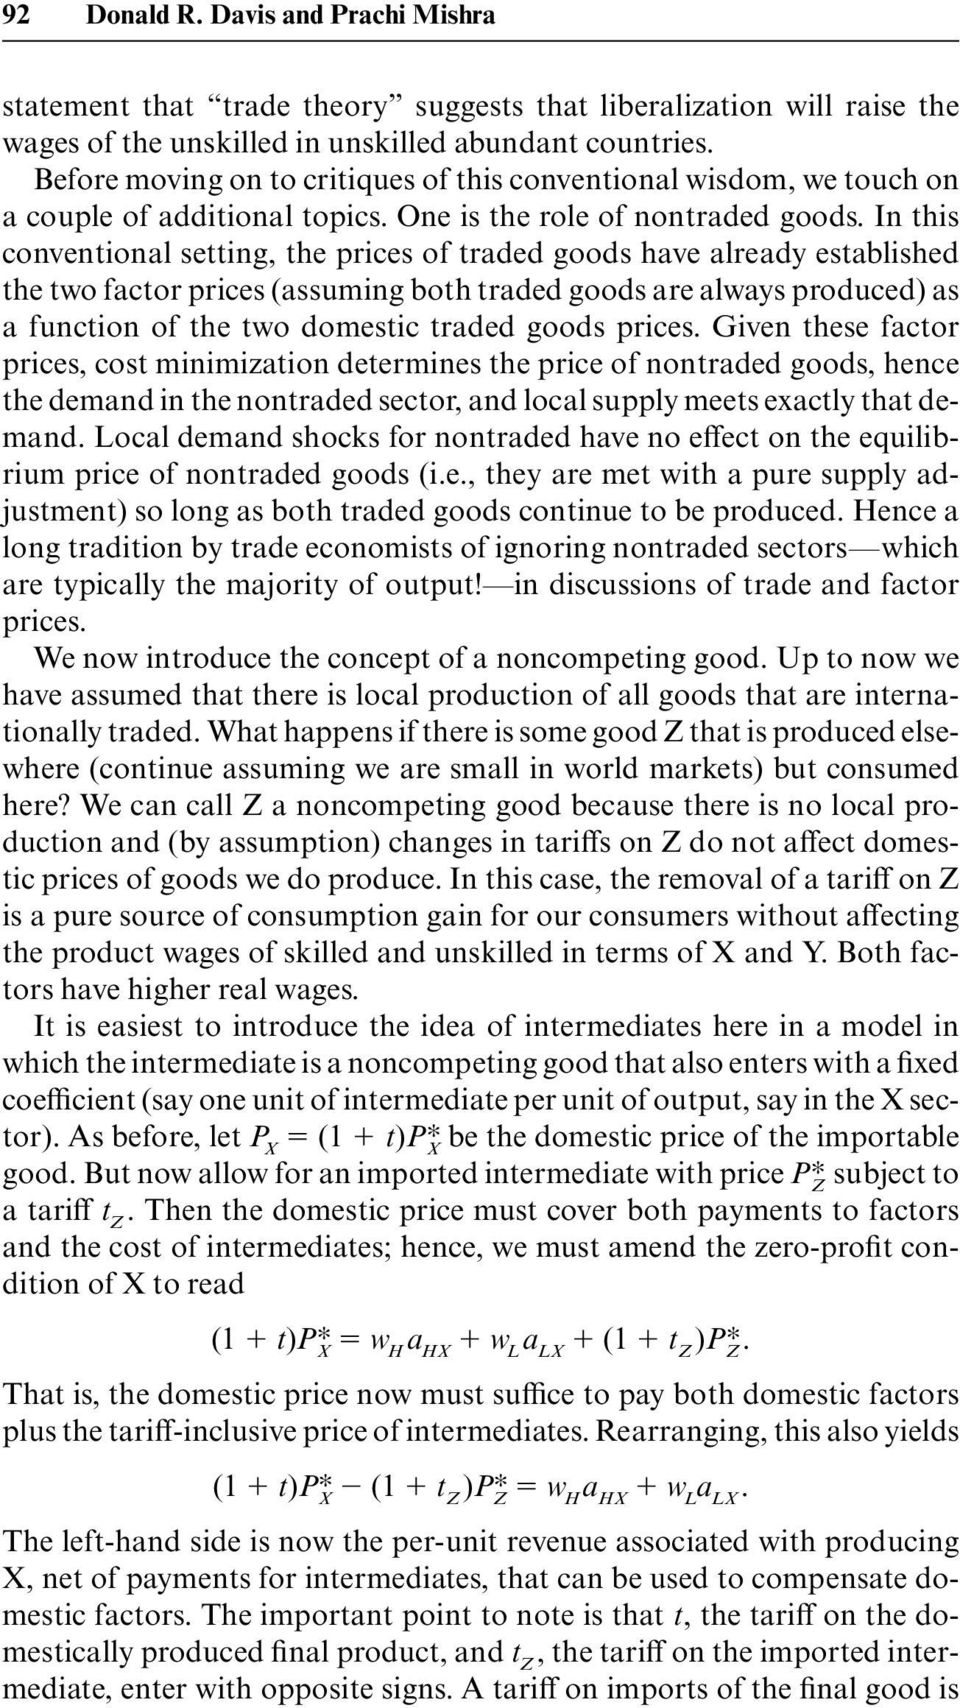 In this conventional setting, the prices of traded goods have already established the two factor prices (assuming both traded goods are always produced) as a function of the two domestic traded goods